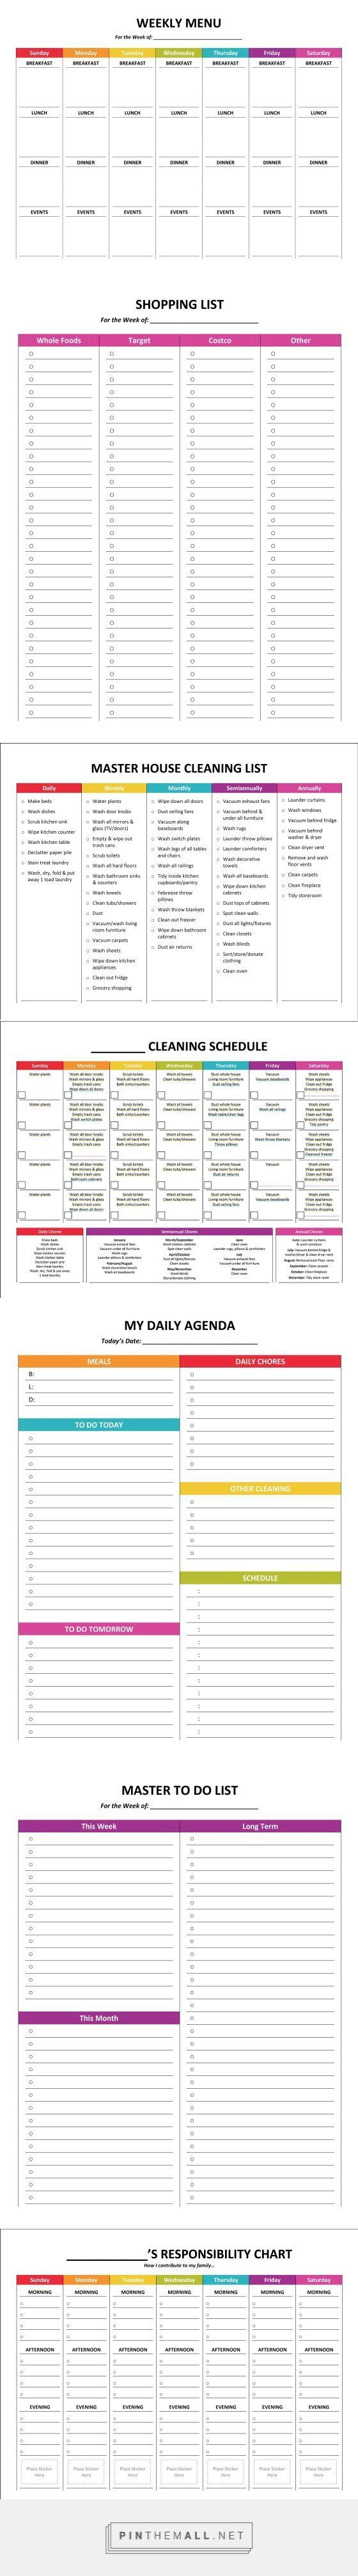 44 best Organization images on Pinterest | Good ideas, Cleaning and ...